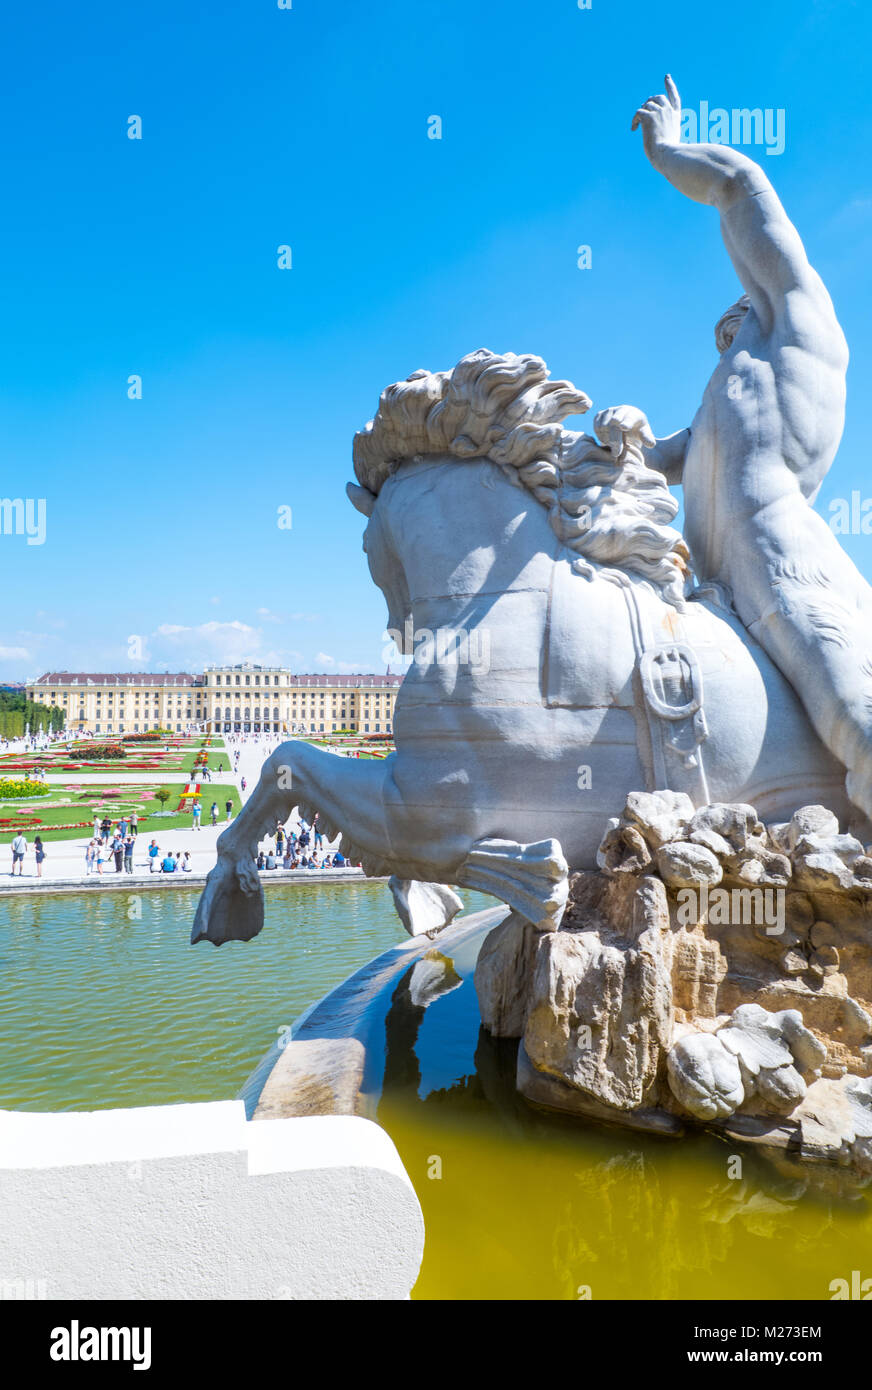 Austria, Vienna,  The garden and the rear facade of the Schonbrunn Palace seen from the Neptune fountain - Stock Image